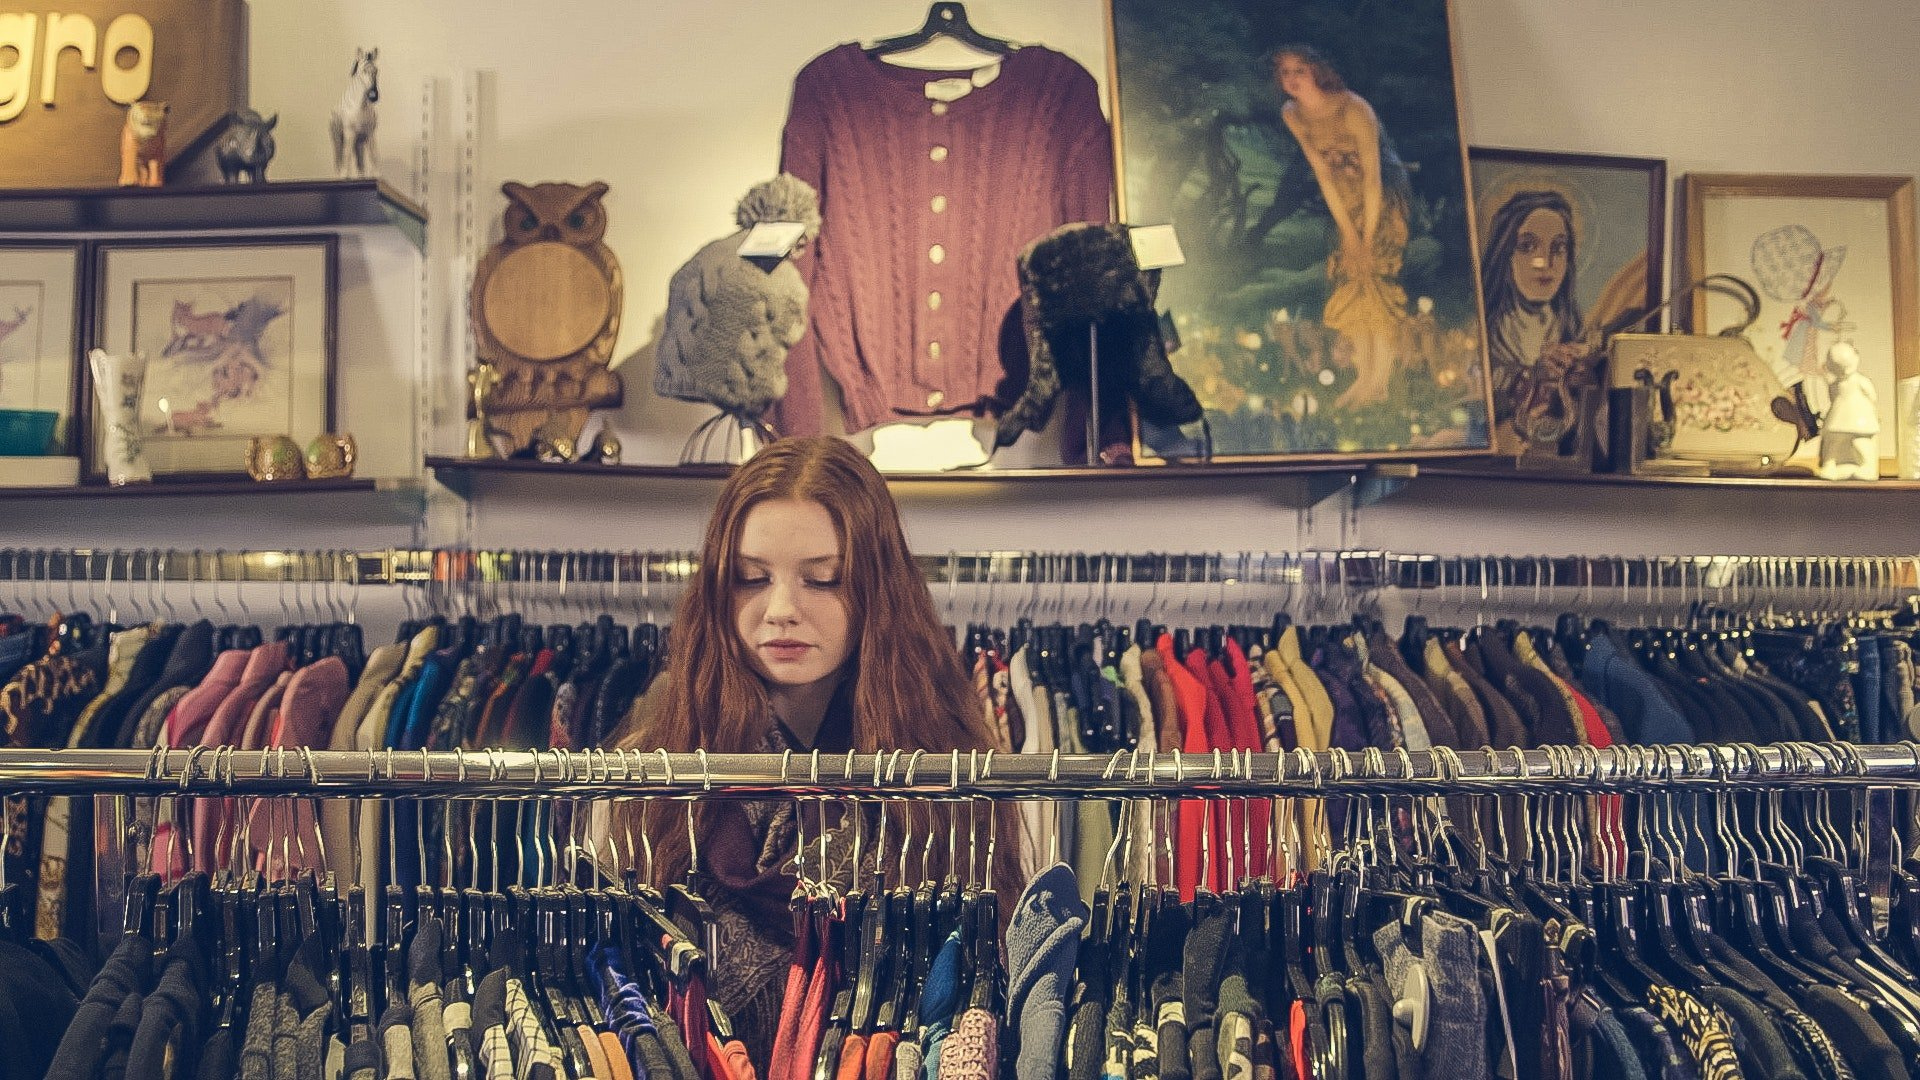 Things You Should Buy at Thrift Stores